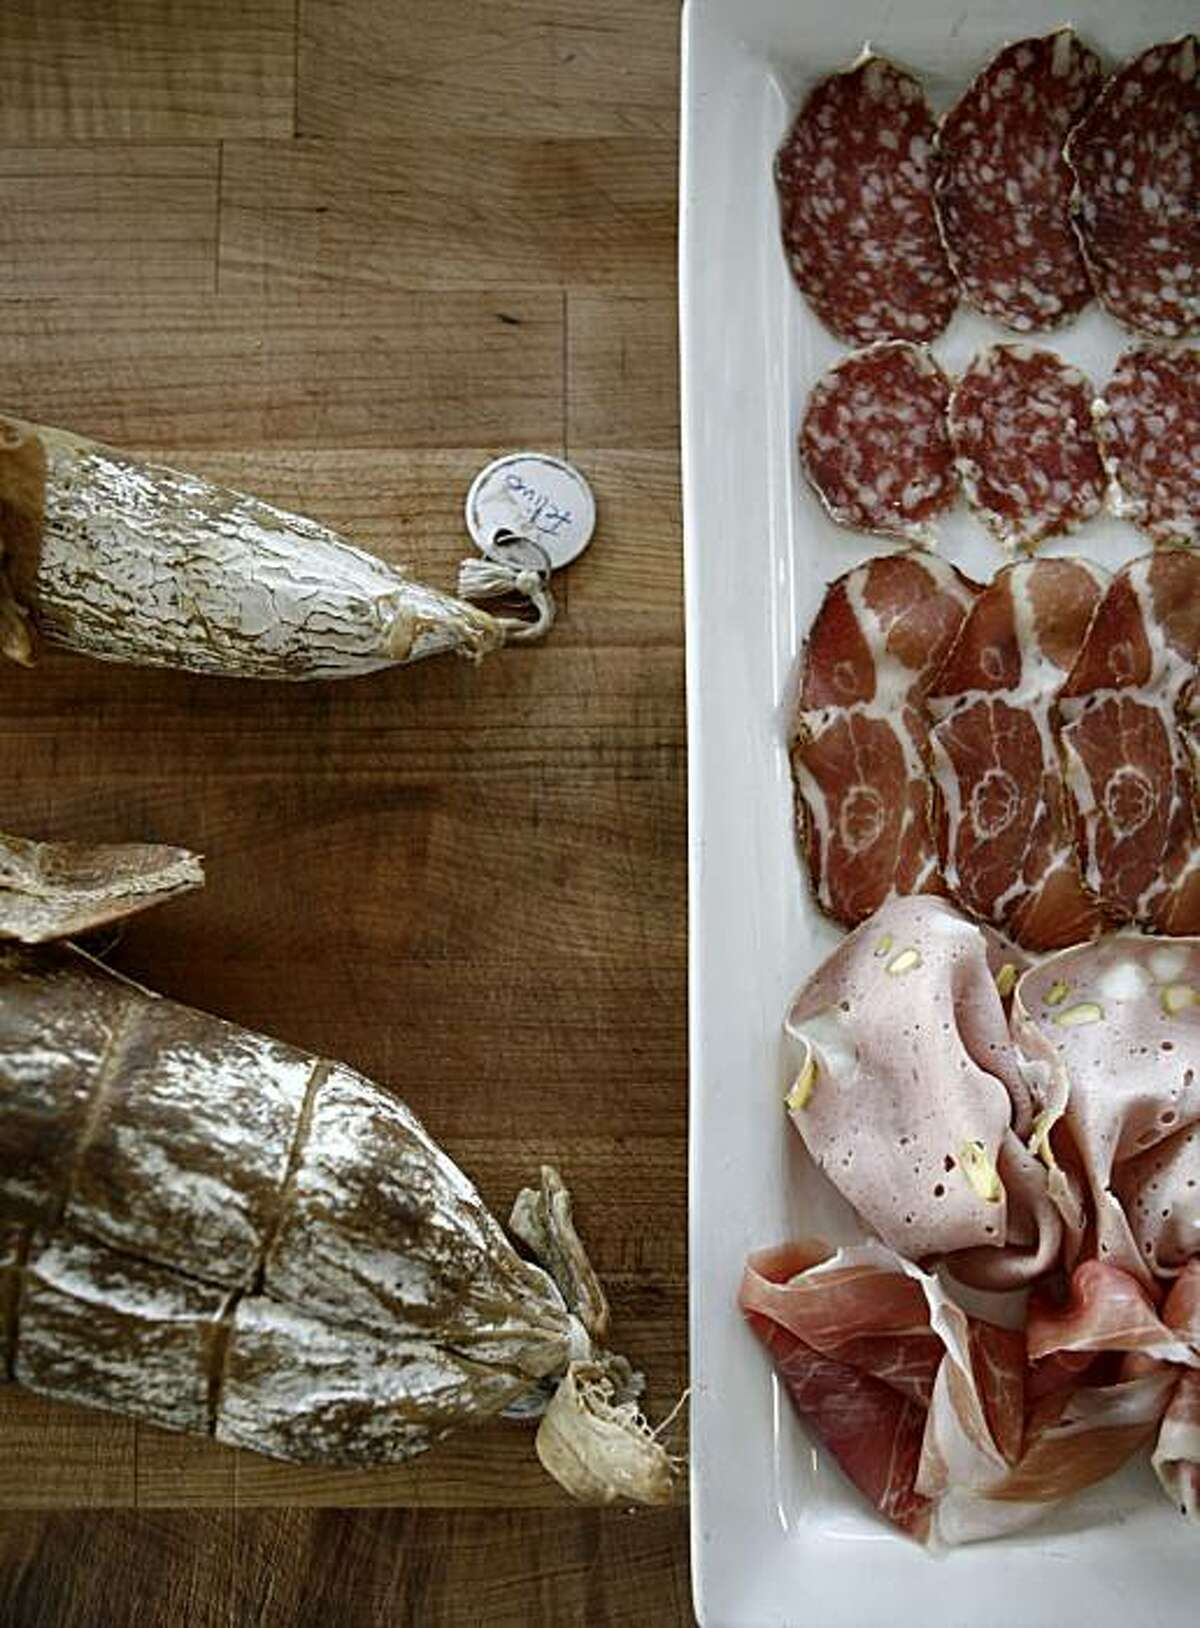 The salumi platter as it is being prepared at Adesso in Oakland.